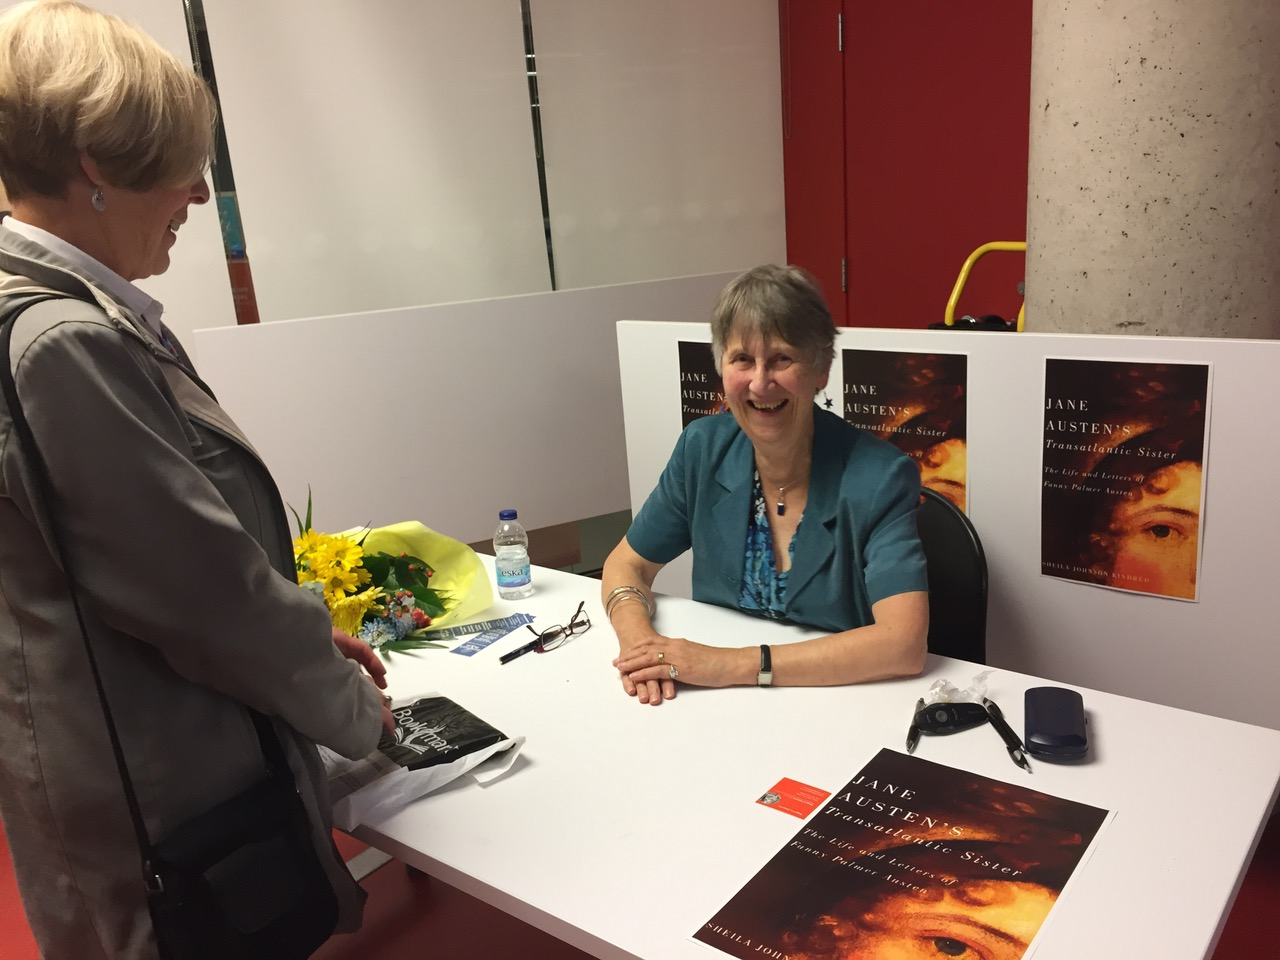 Signing at Halifax Book Launch